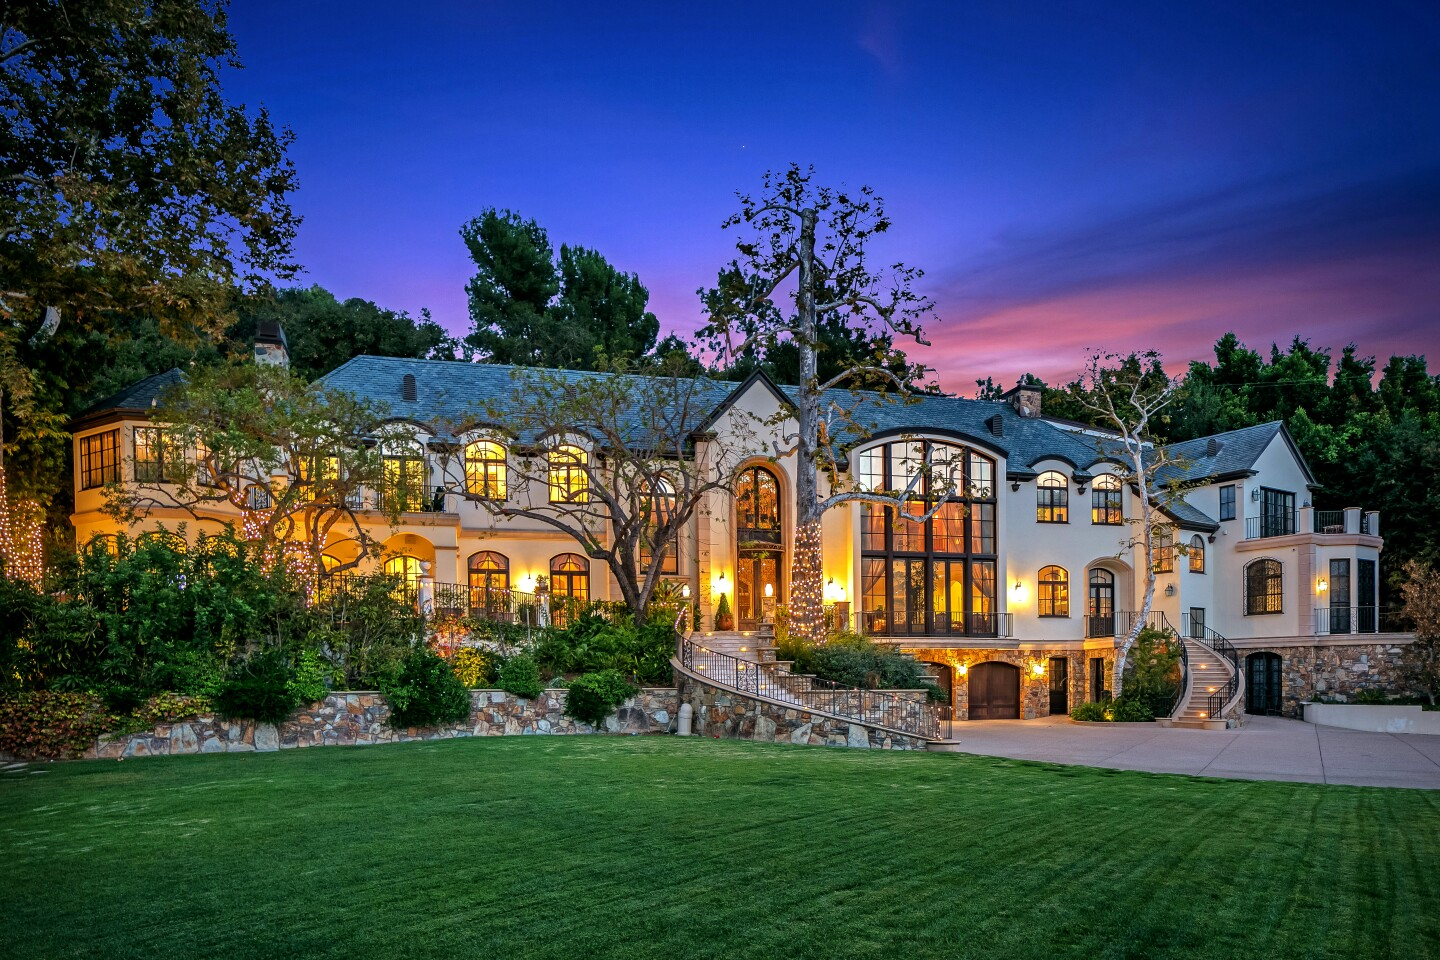 The amenity-loaded mansion in Benedict Canyon spans 16,000 square feet and includes a swimming pool with a 60-foot slide.